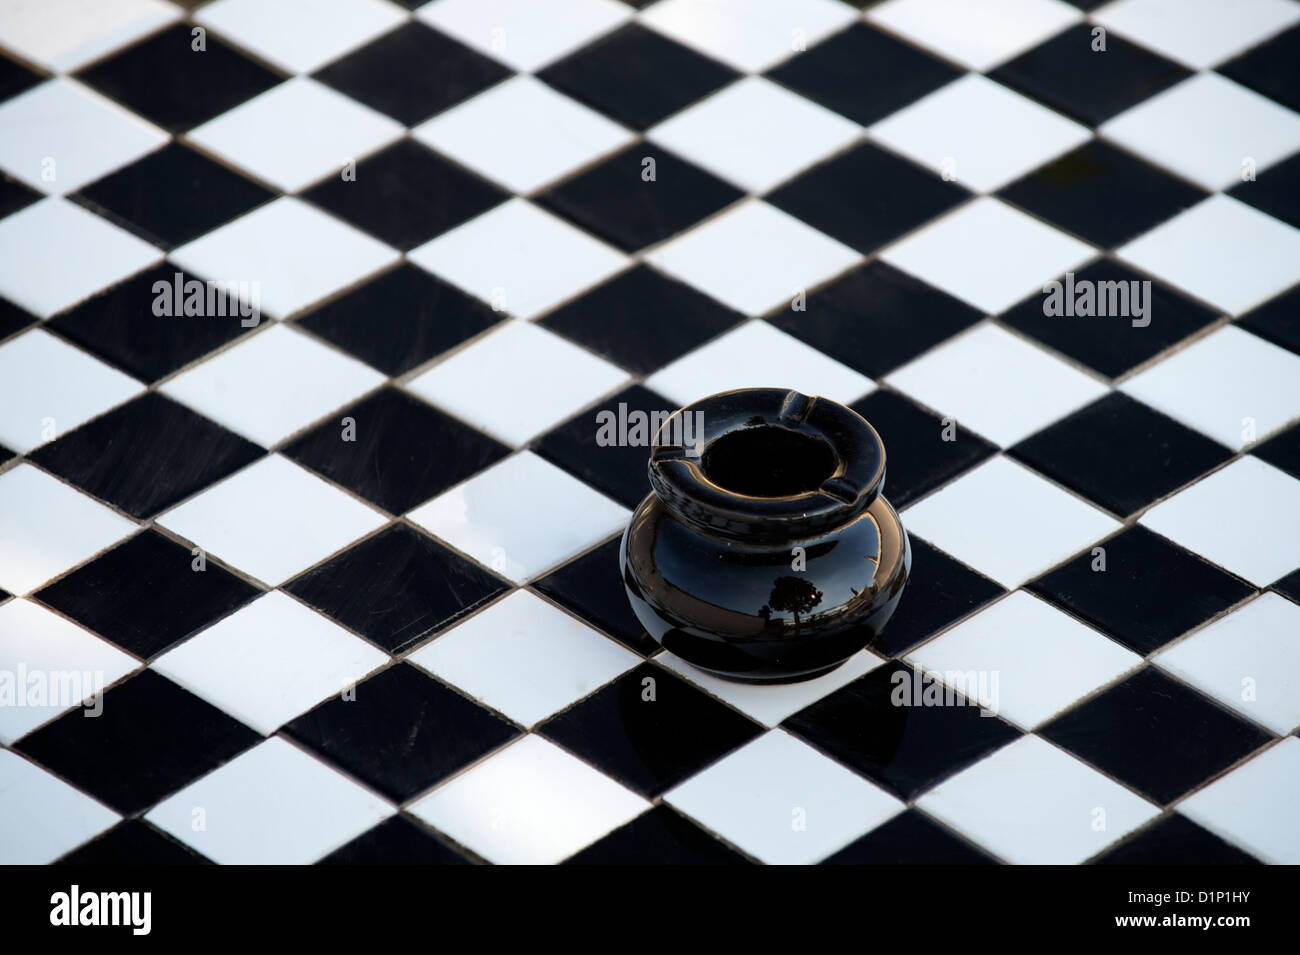 Black ceramic ashtray on chequered or checkered black and white tiles table - Stock Image